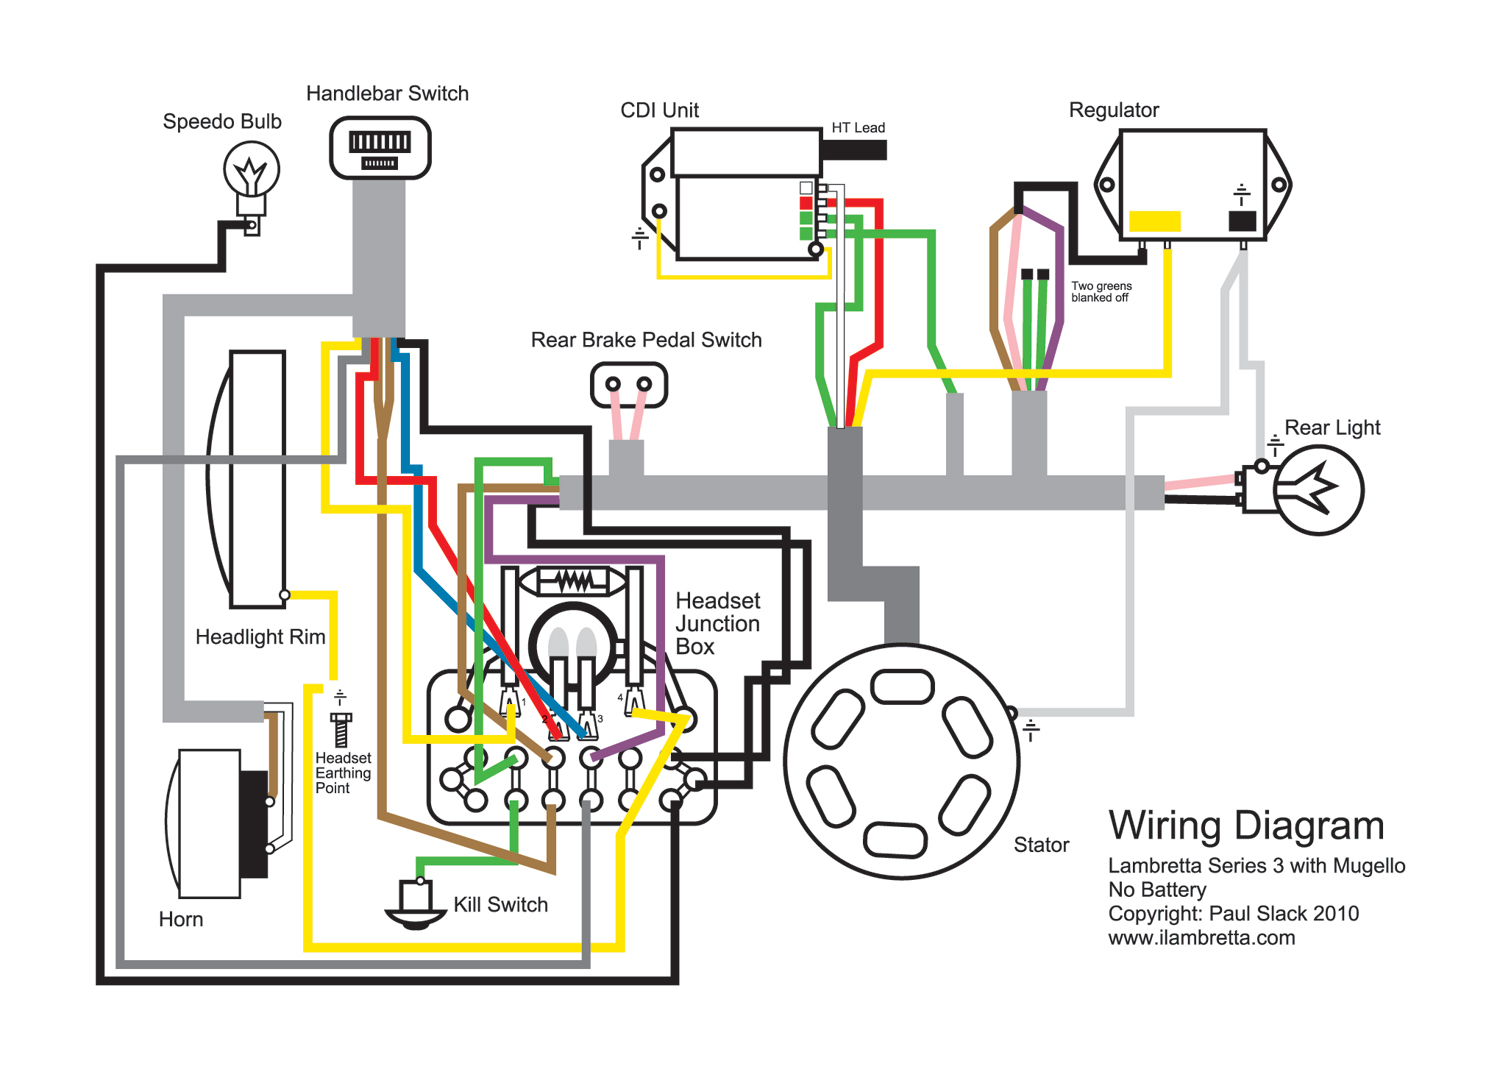 Kazuma 150cc Wiring Diagram - List of Wiring Diagrams on